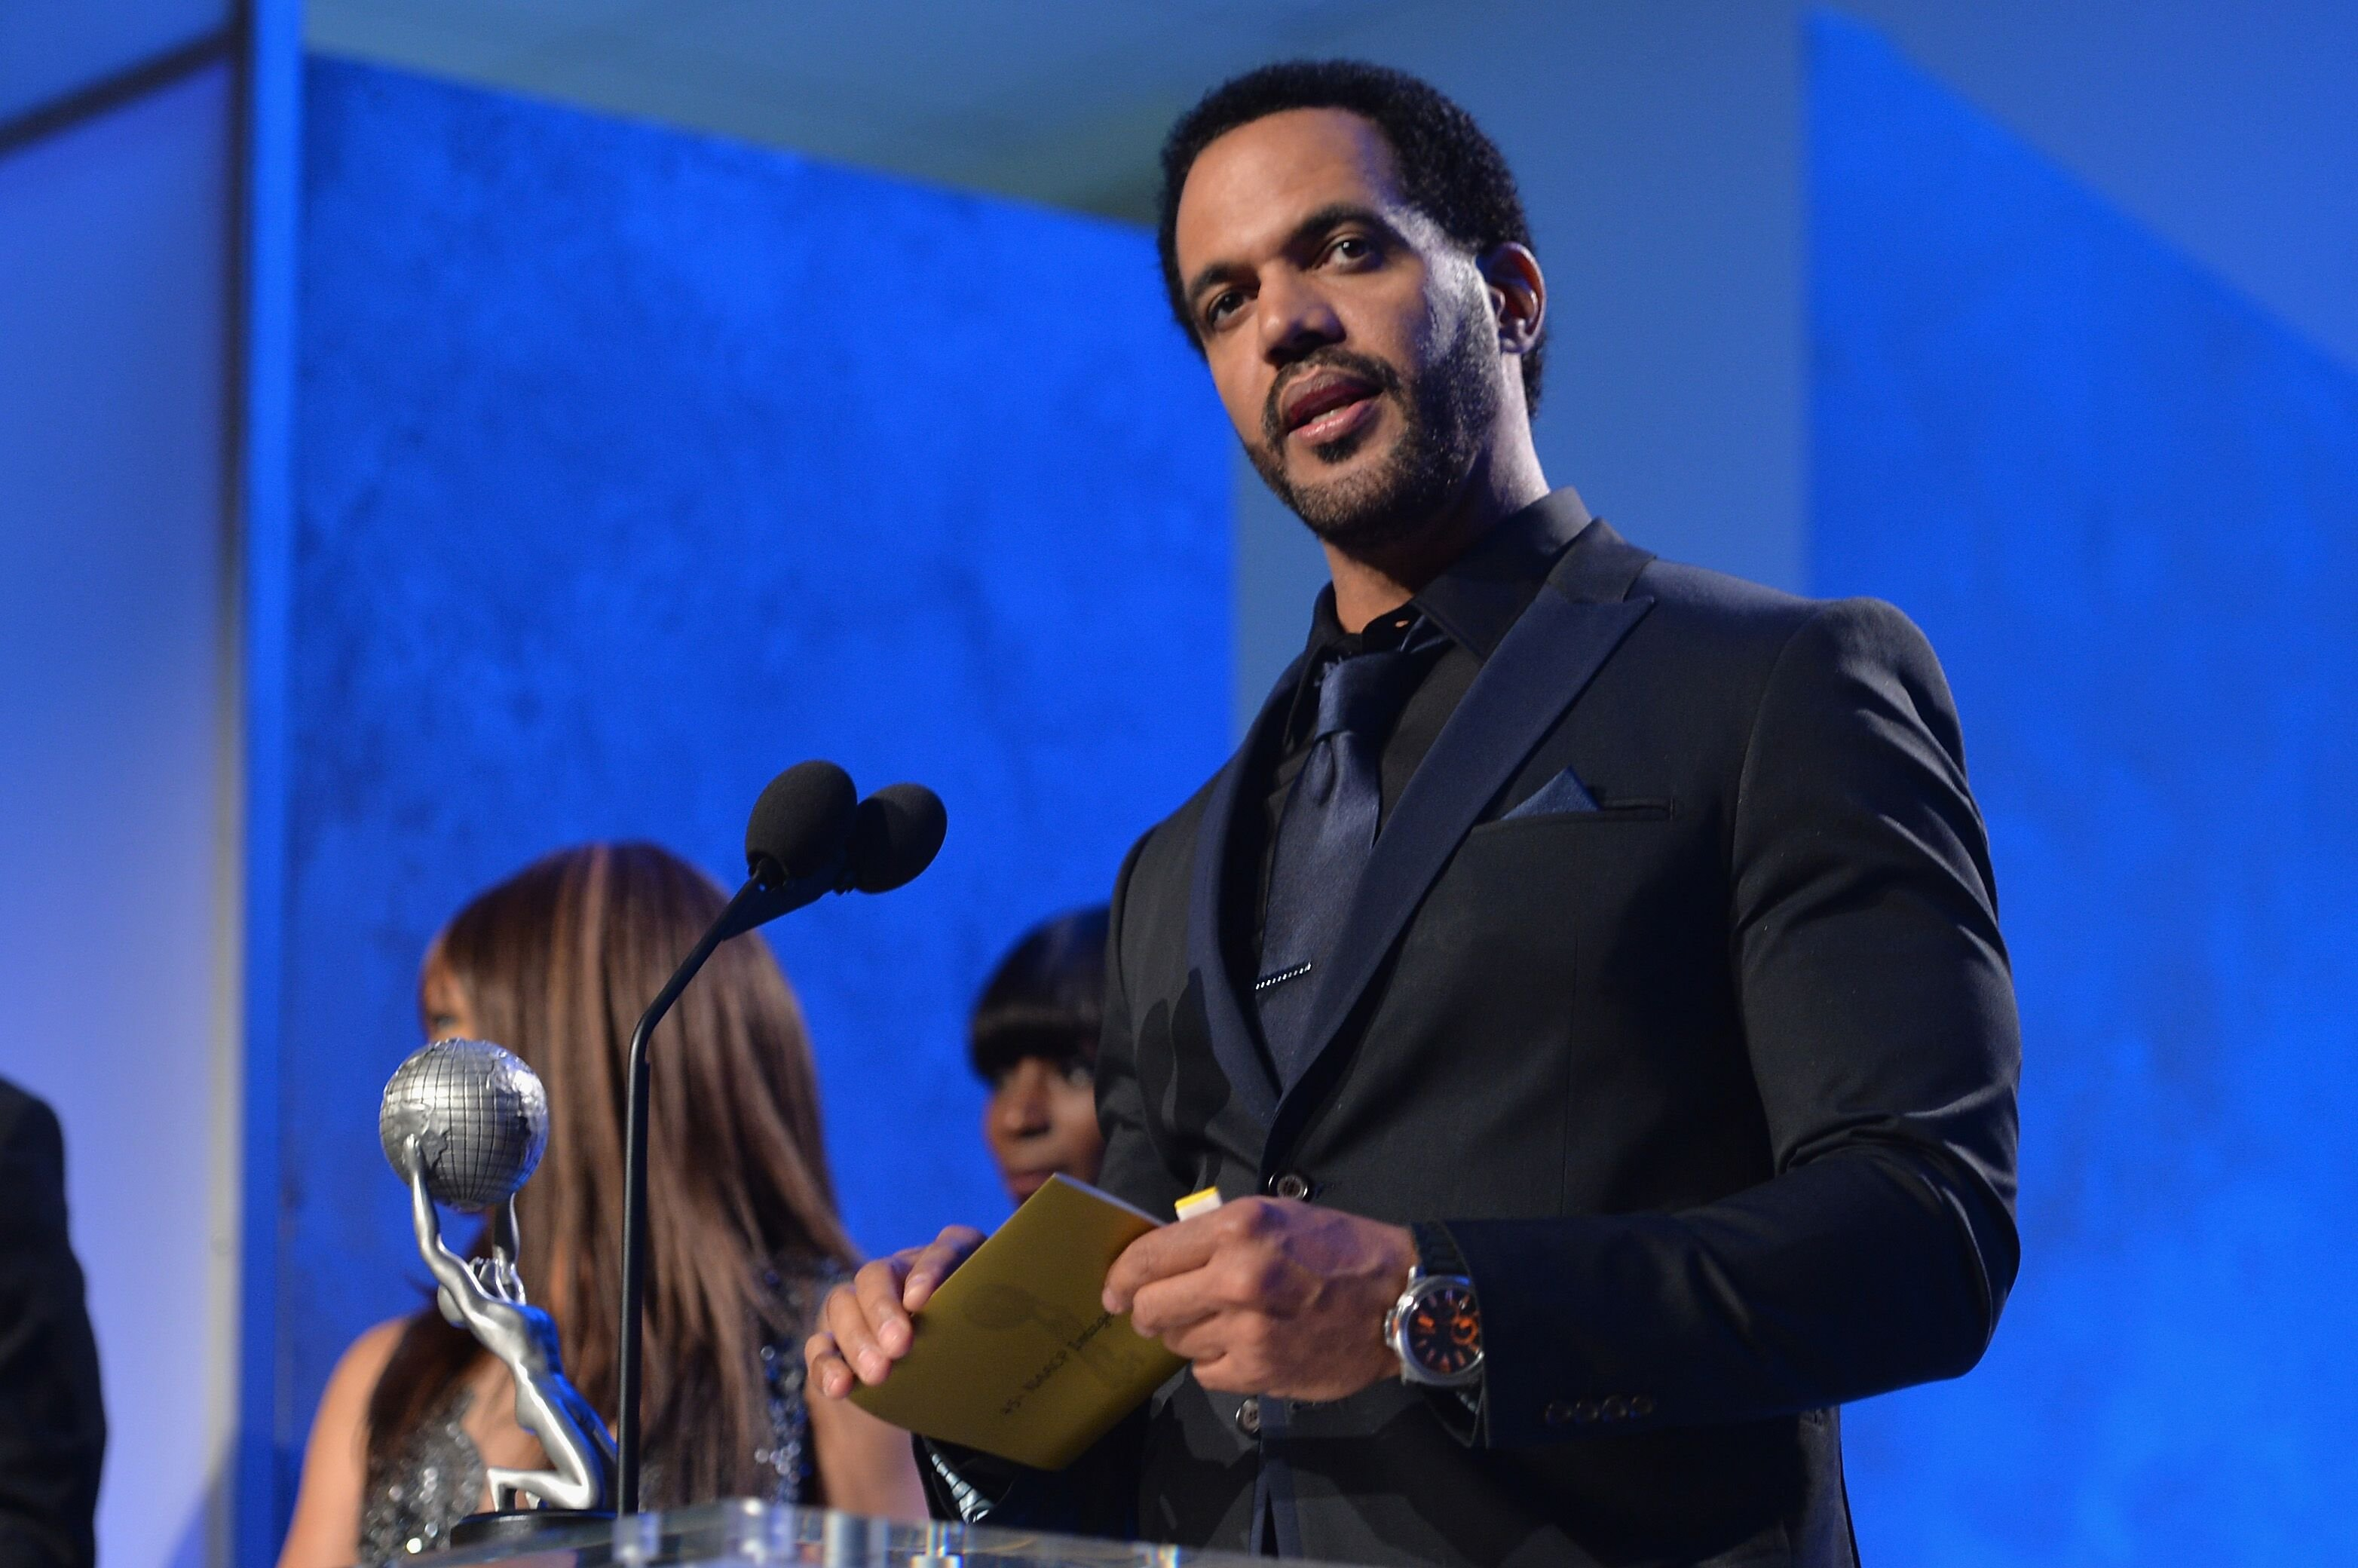 Kristoff St. John at the 45th NAACP Awards Ceremony at the Pasadena Civic Auditorium | Photo: Getty Images